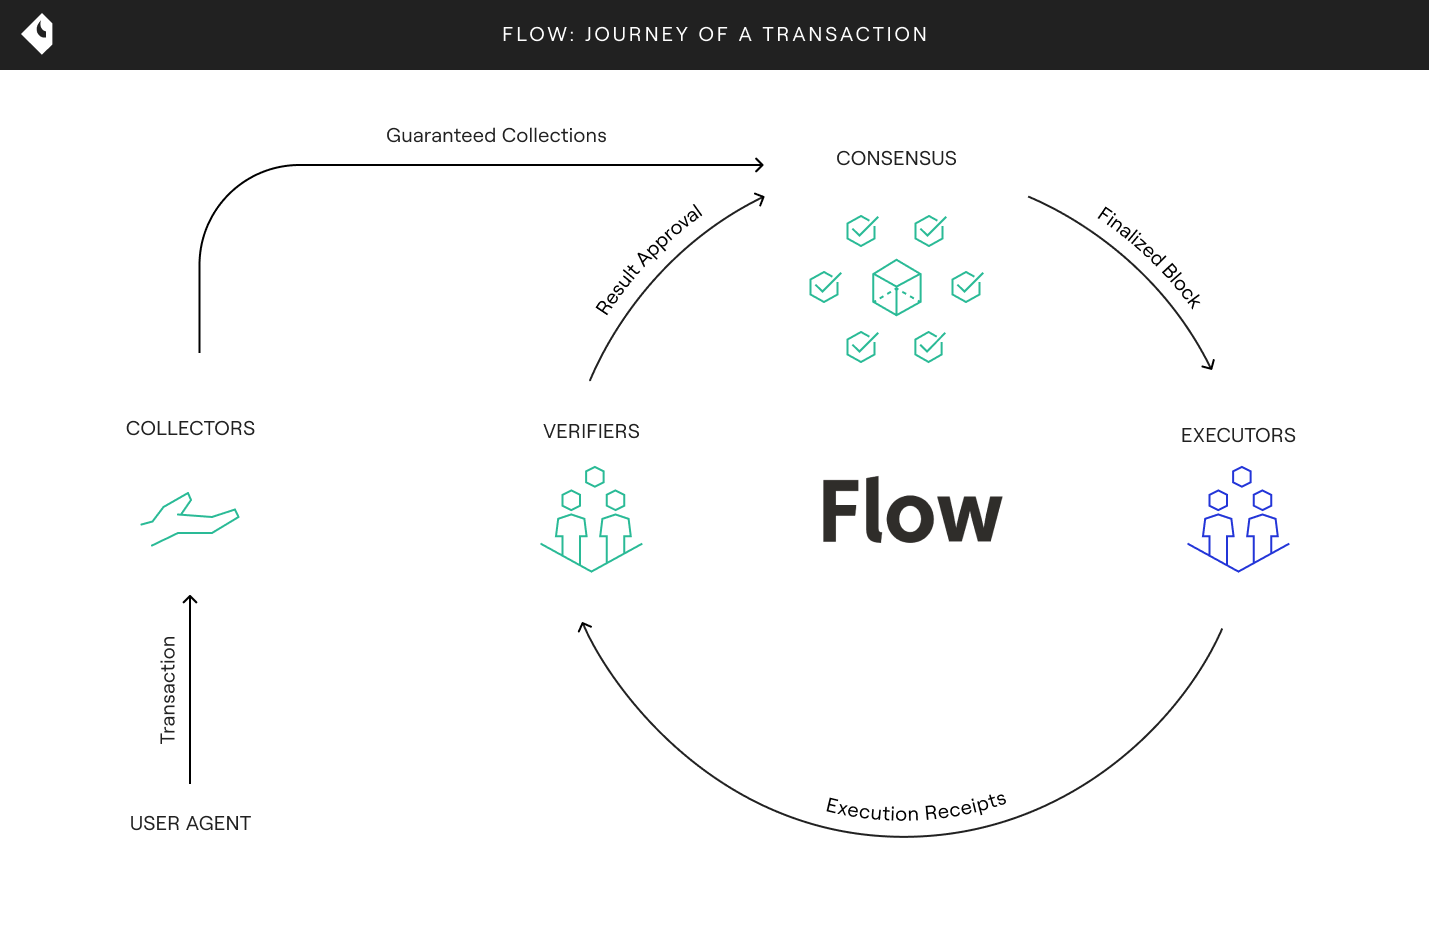 Flow: Journey of a Transaction